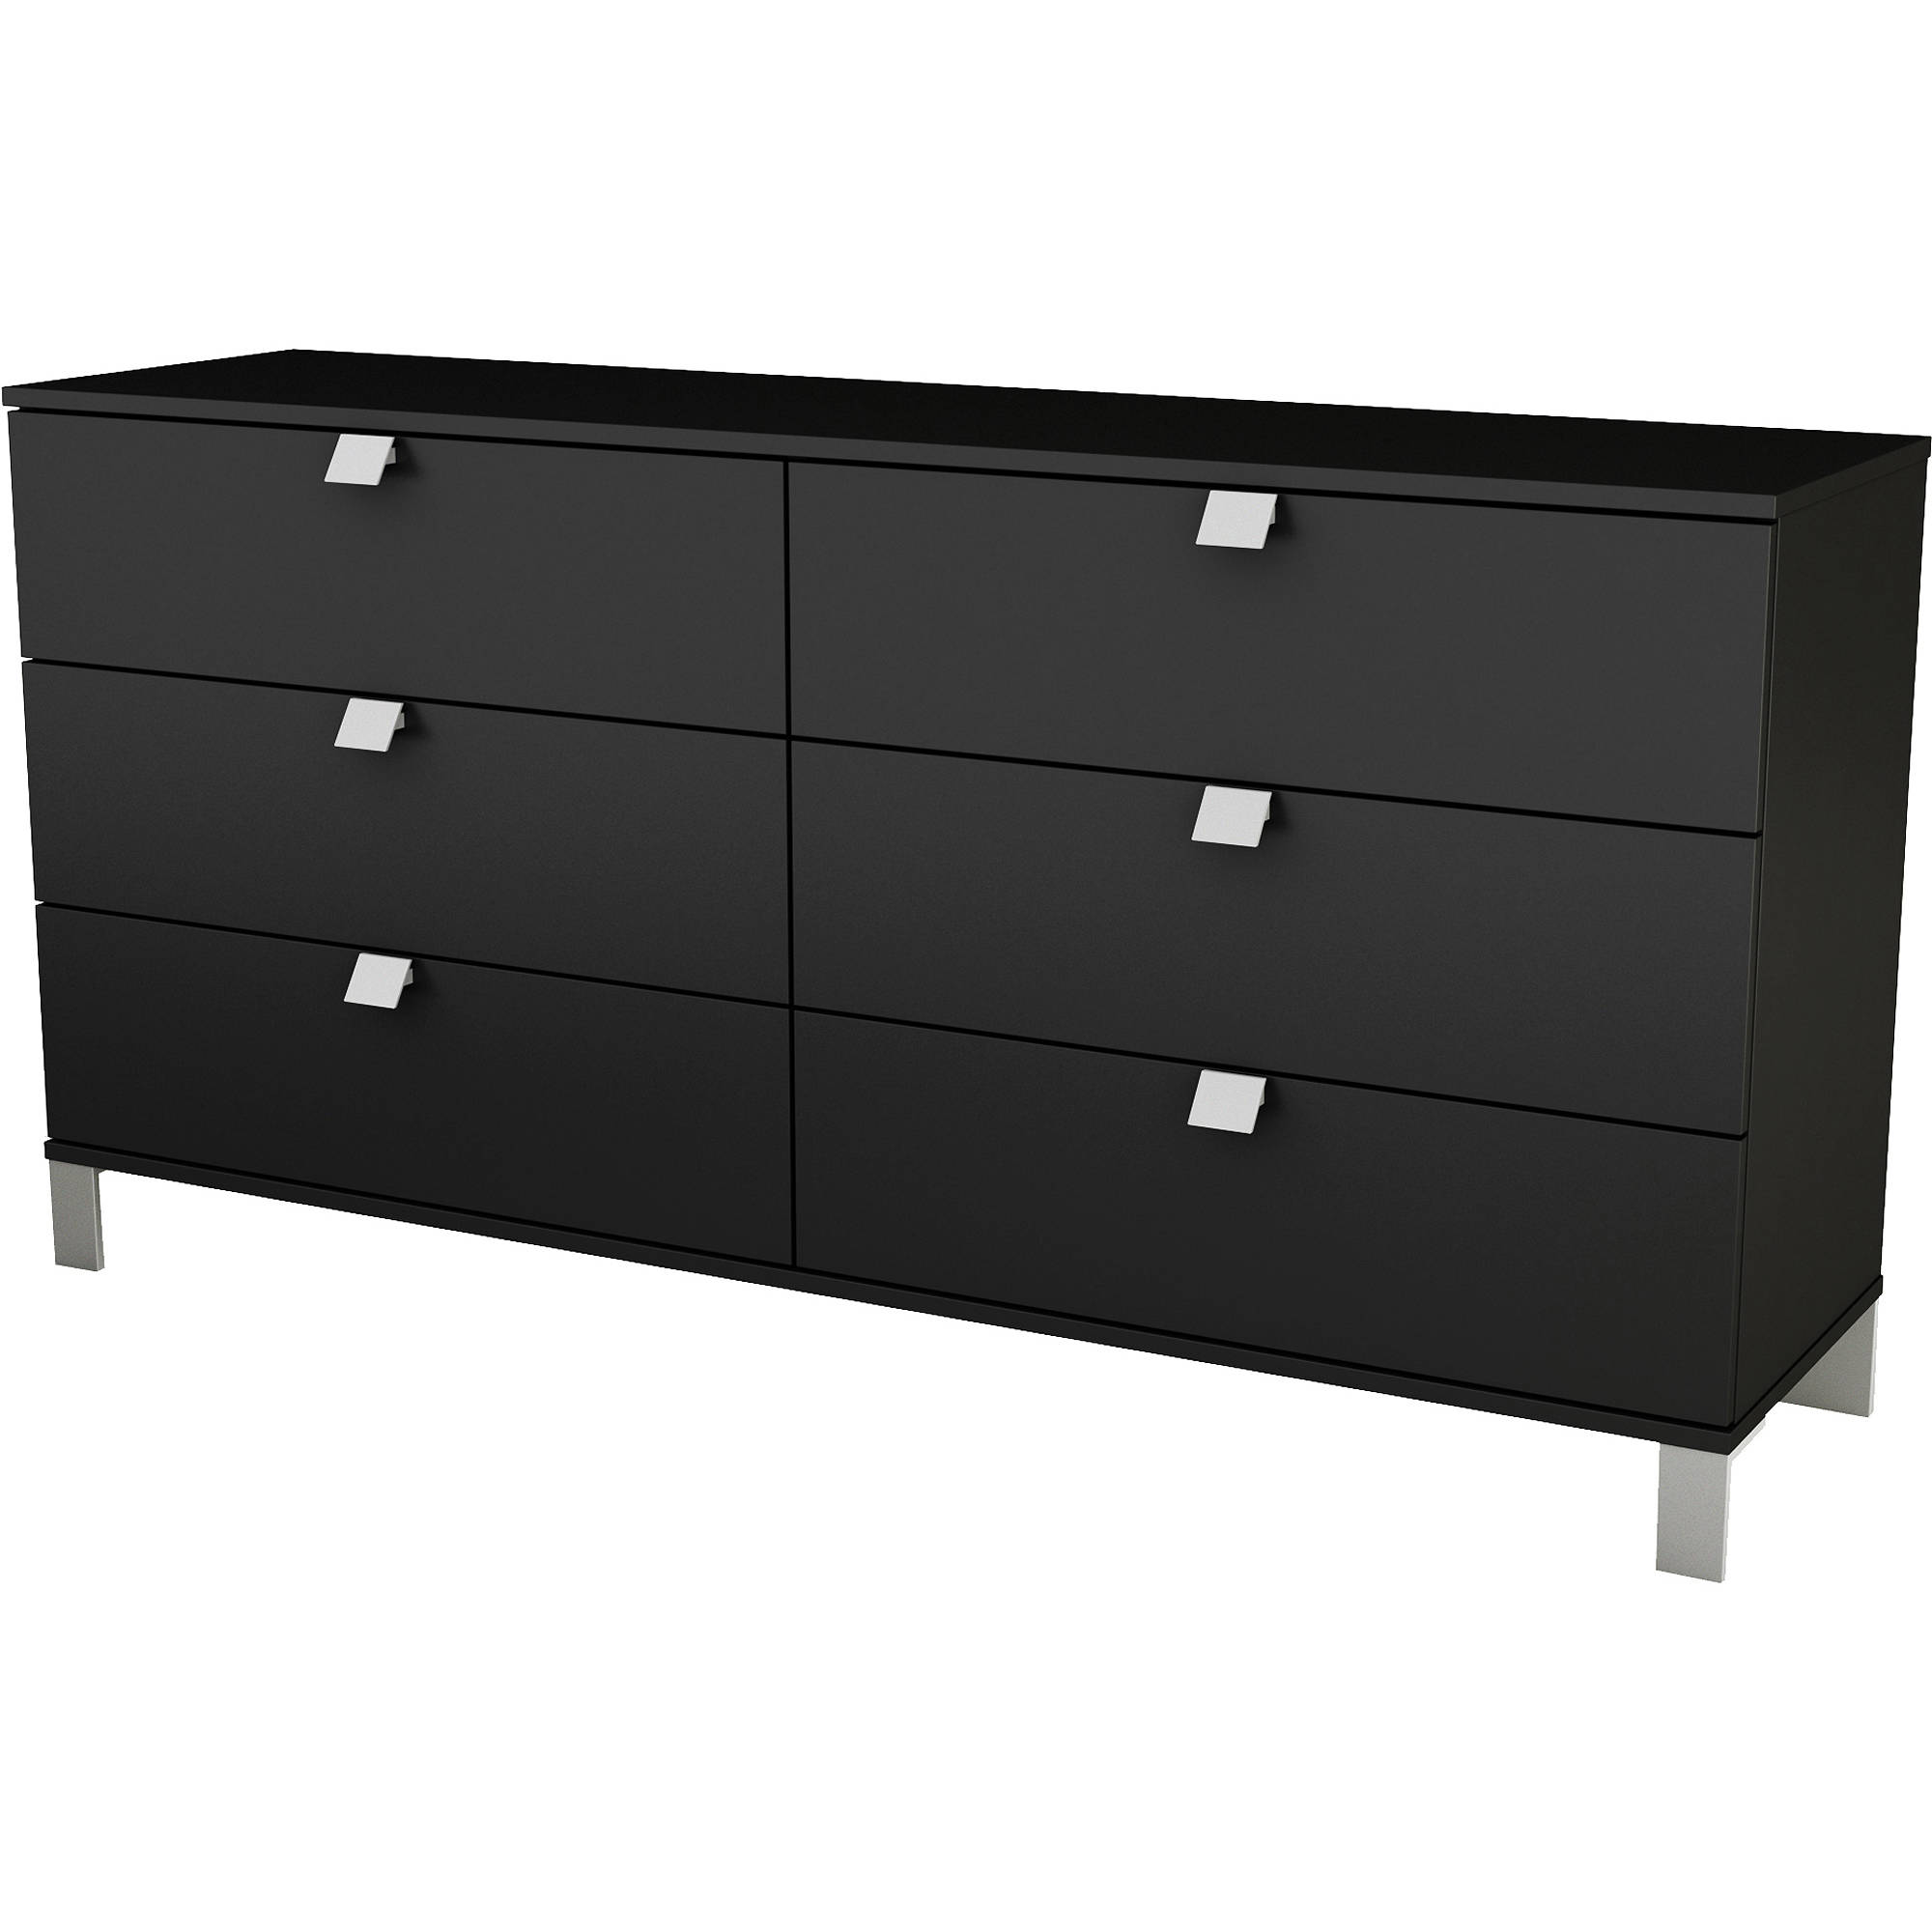 beautiful com of south fantasy interior spark dresser full shore black shameonwinndixie in size pure drawer with